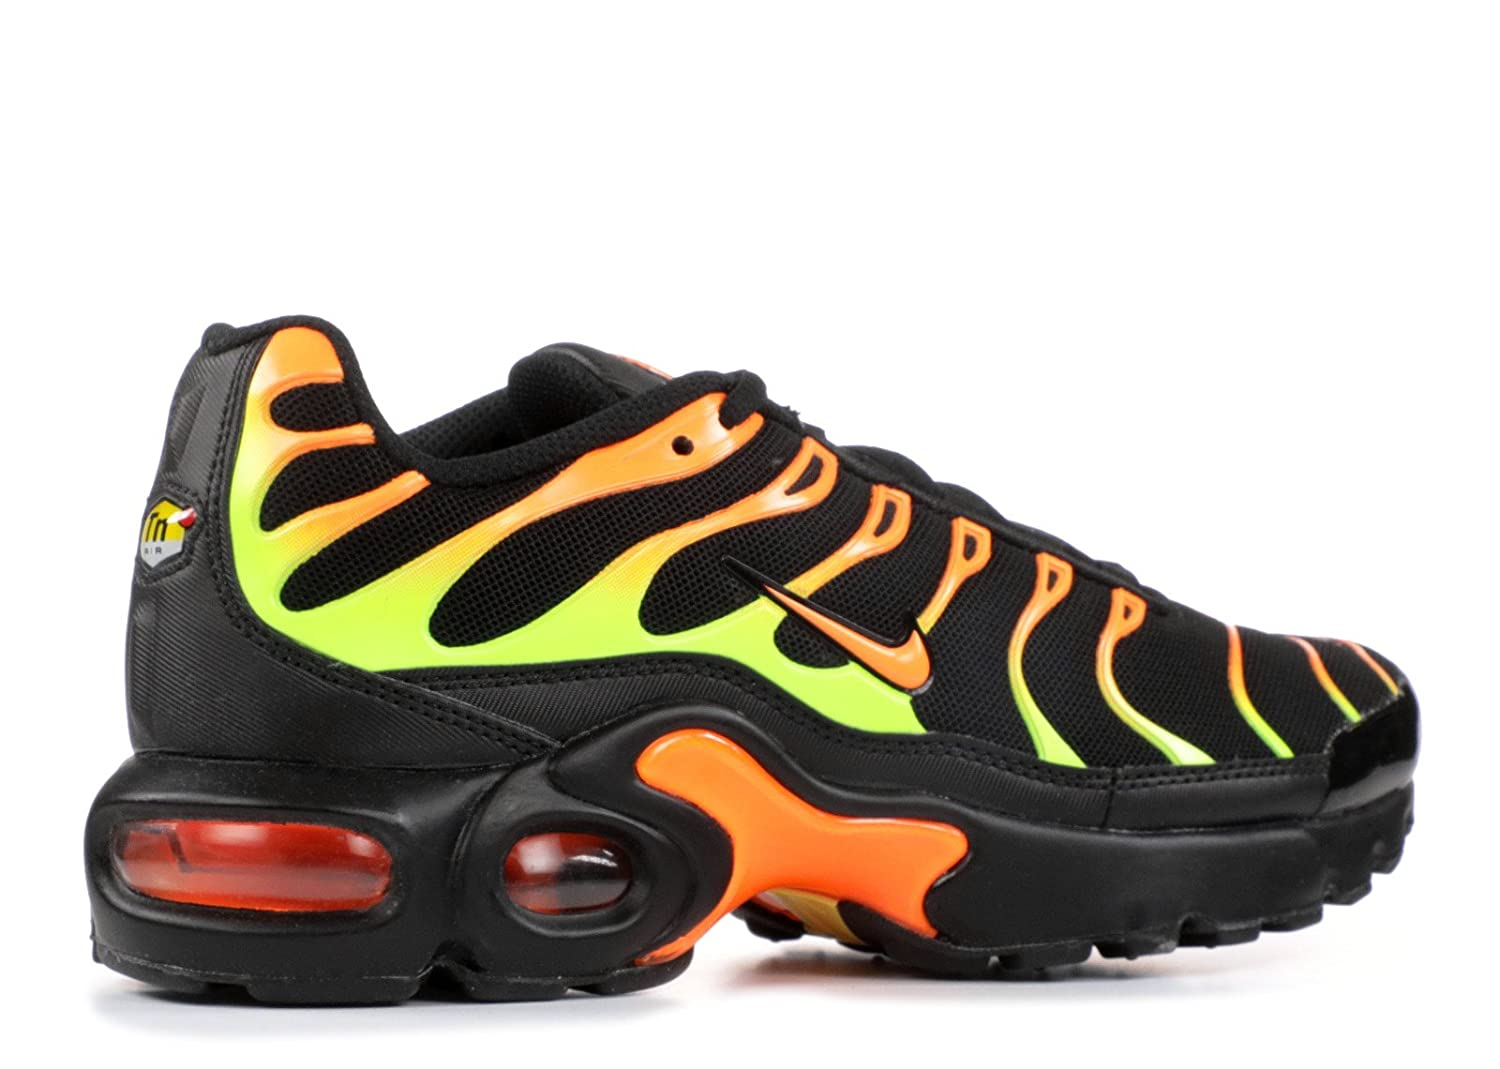 9233d886f9 Amazon.com | Nike Air Max Plus Black/Volt-Total Orange (GS) (3.5 M US Big  Kid) | Fashion Sneakers